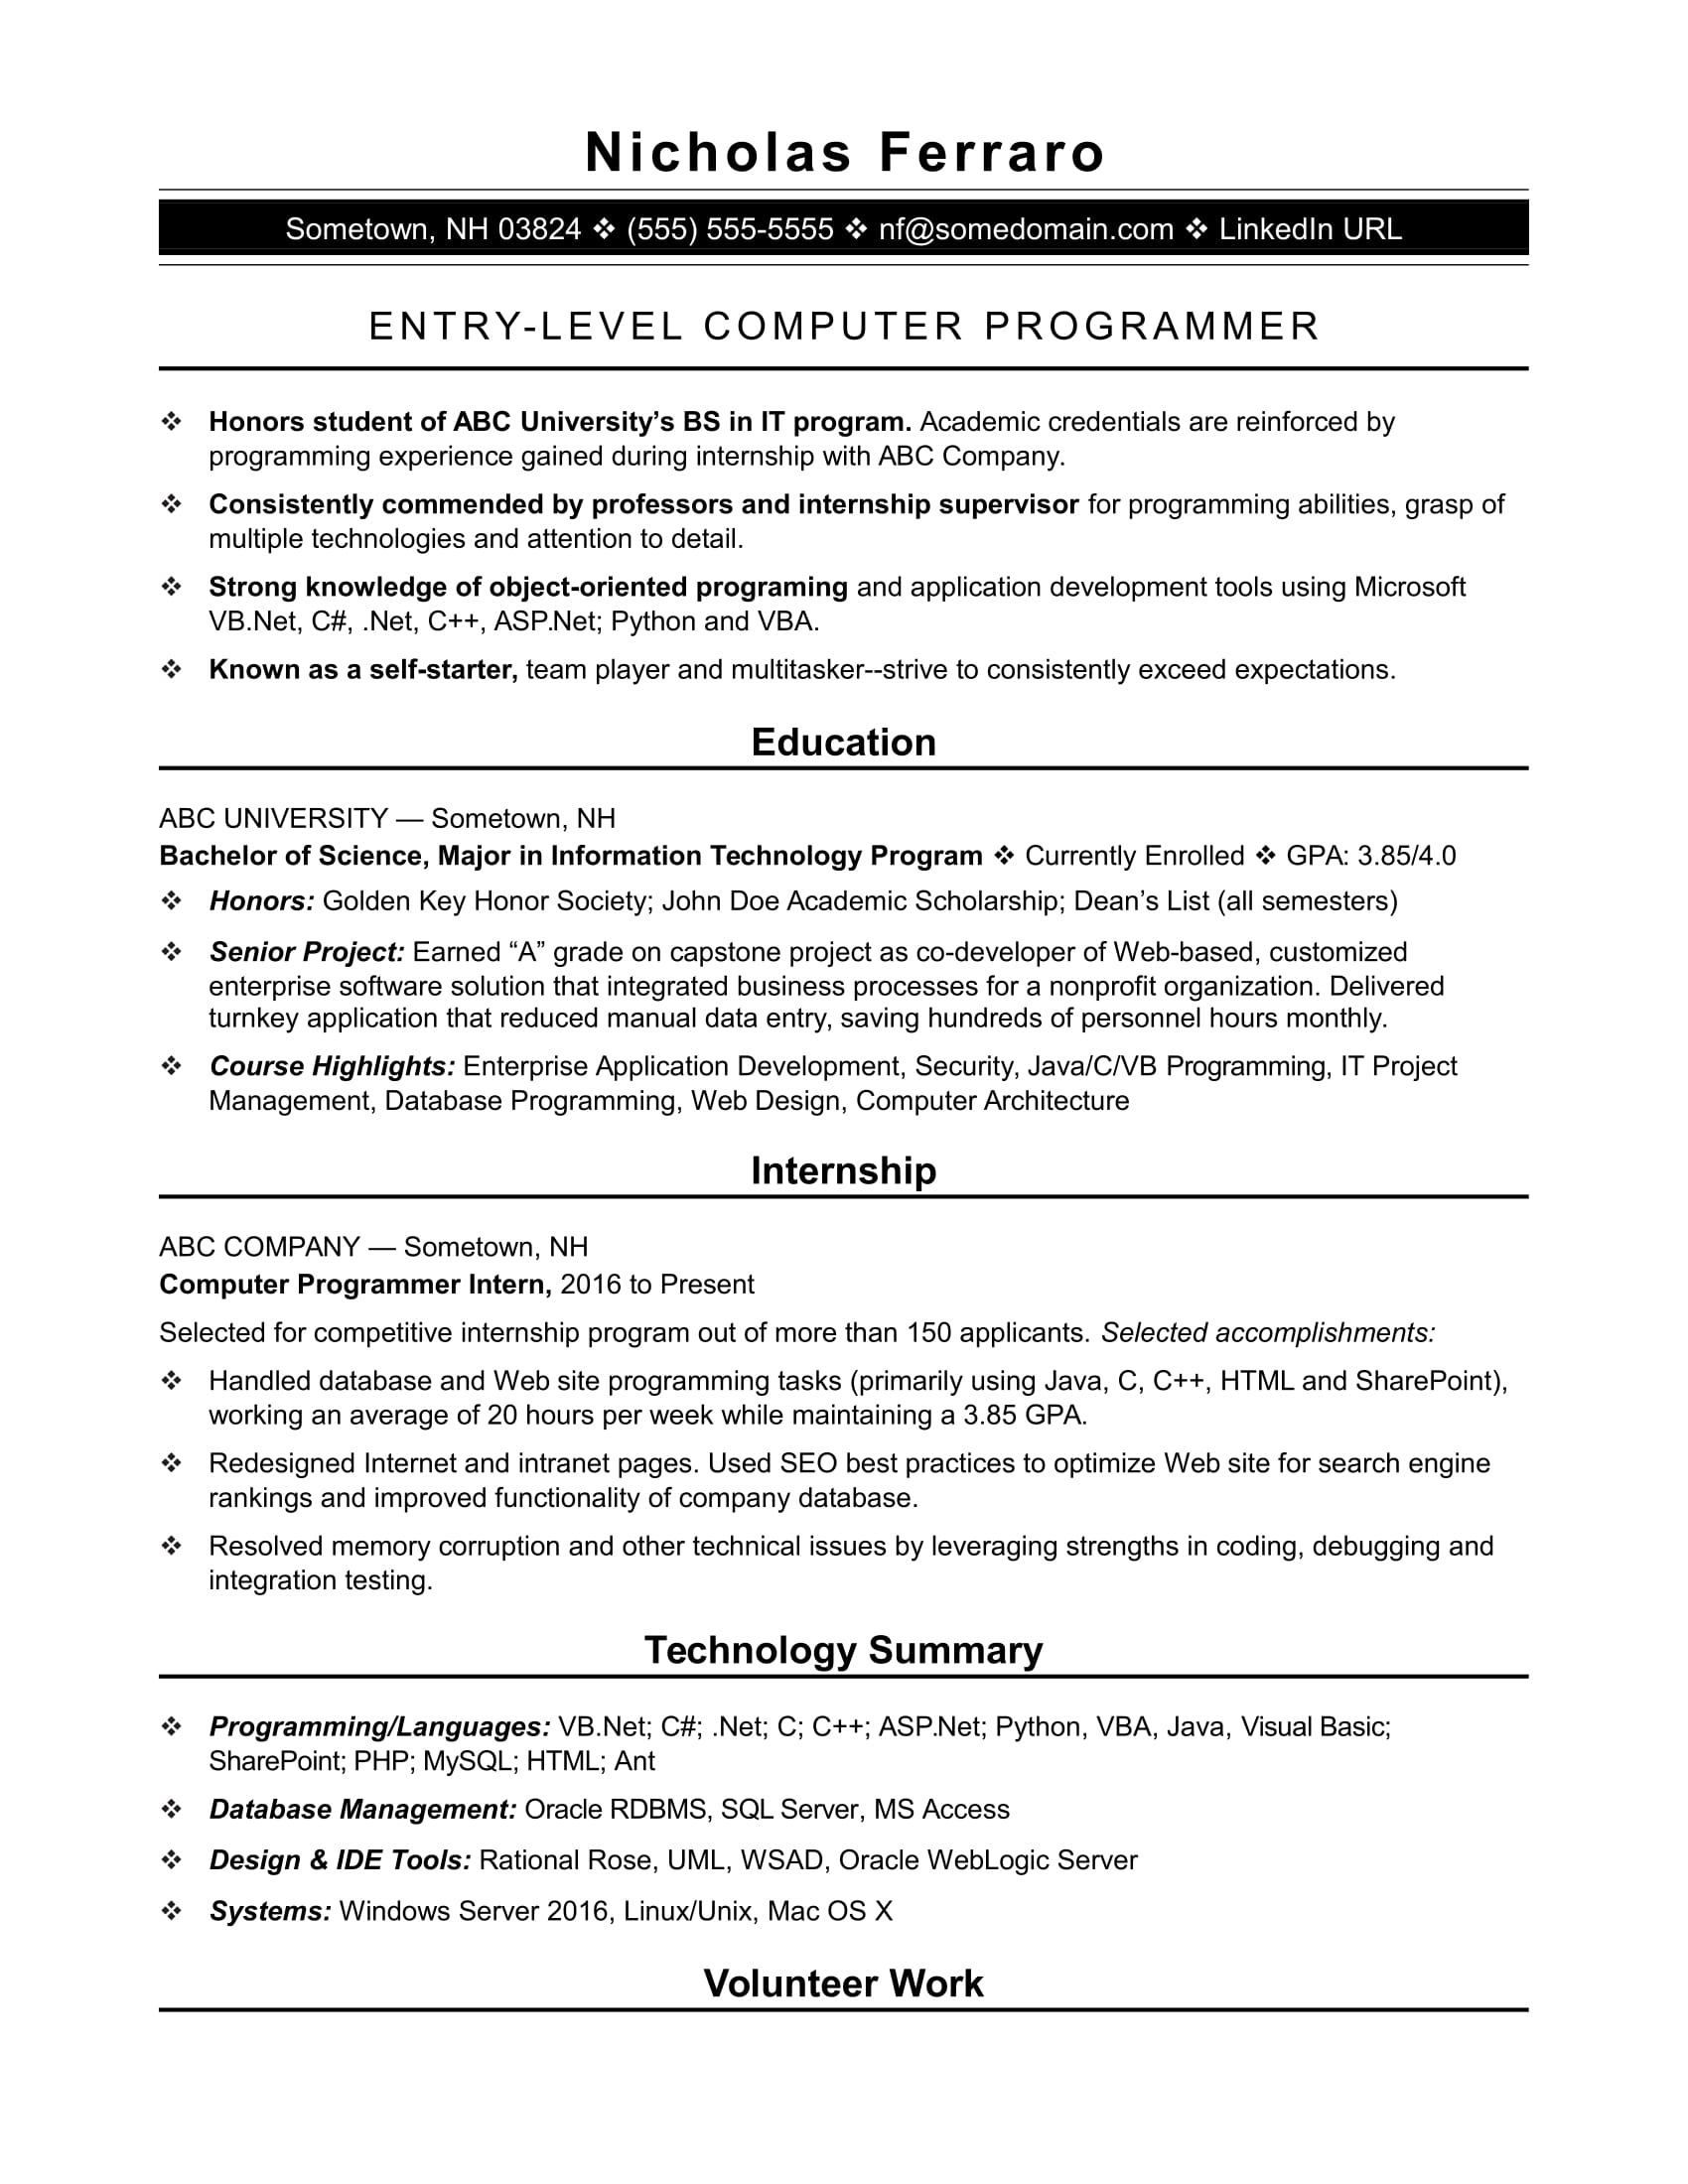 sample resume for an entry level computer programmer - Java Sample Resume